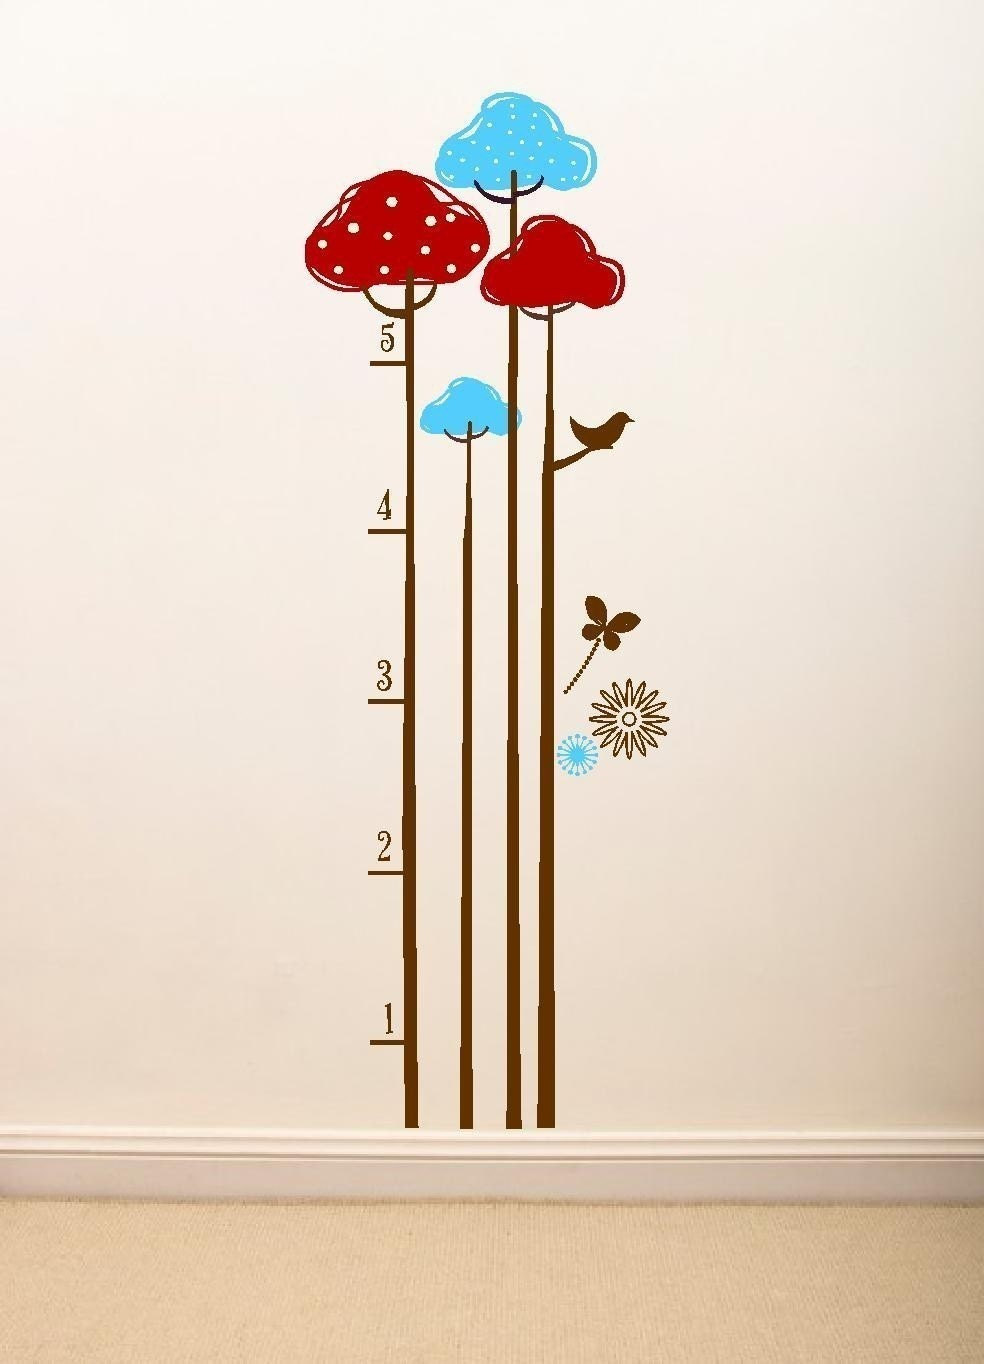 Etsy find wall decal growth charts child growth chart decal vinyl graphic wall art larger size nvjuhfo Gallery